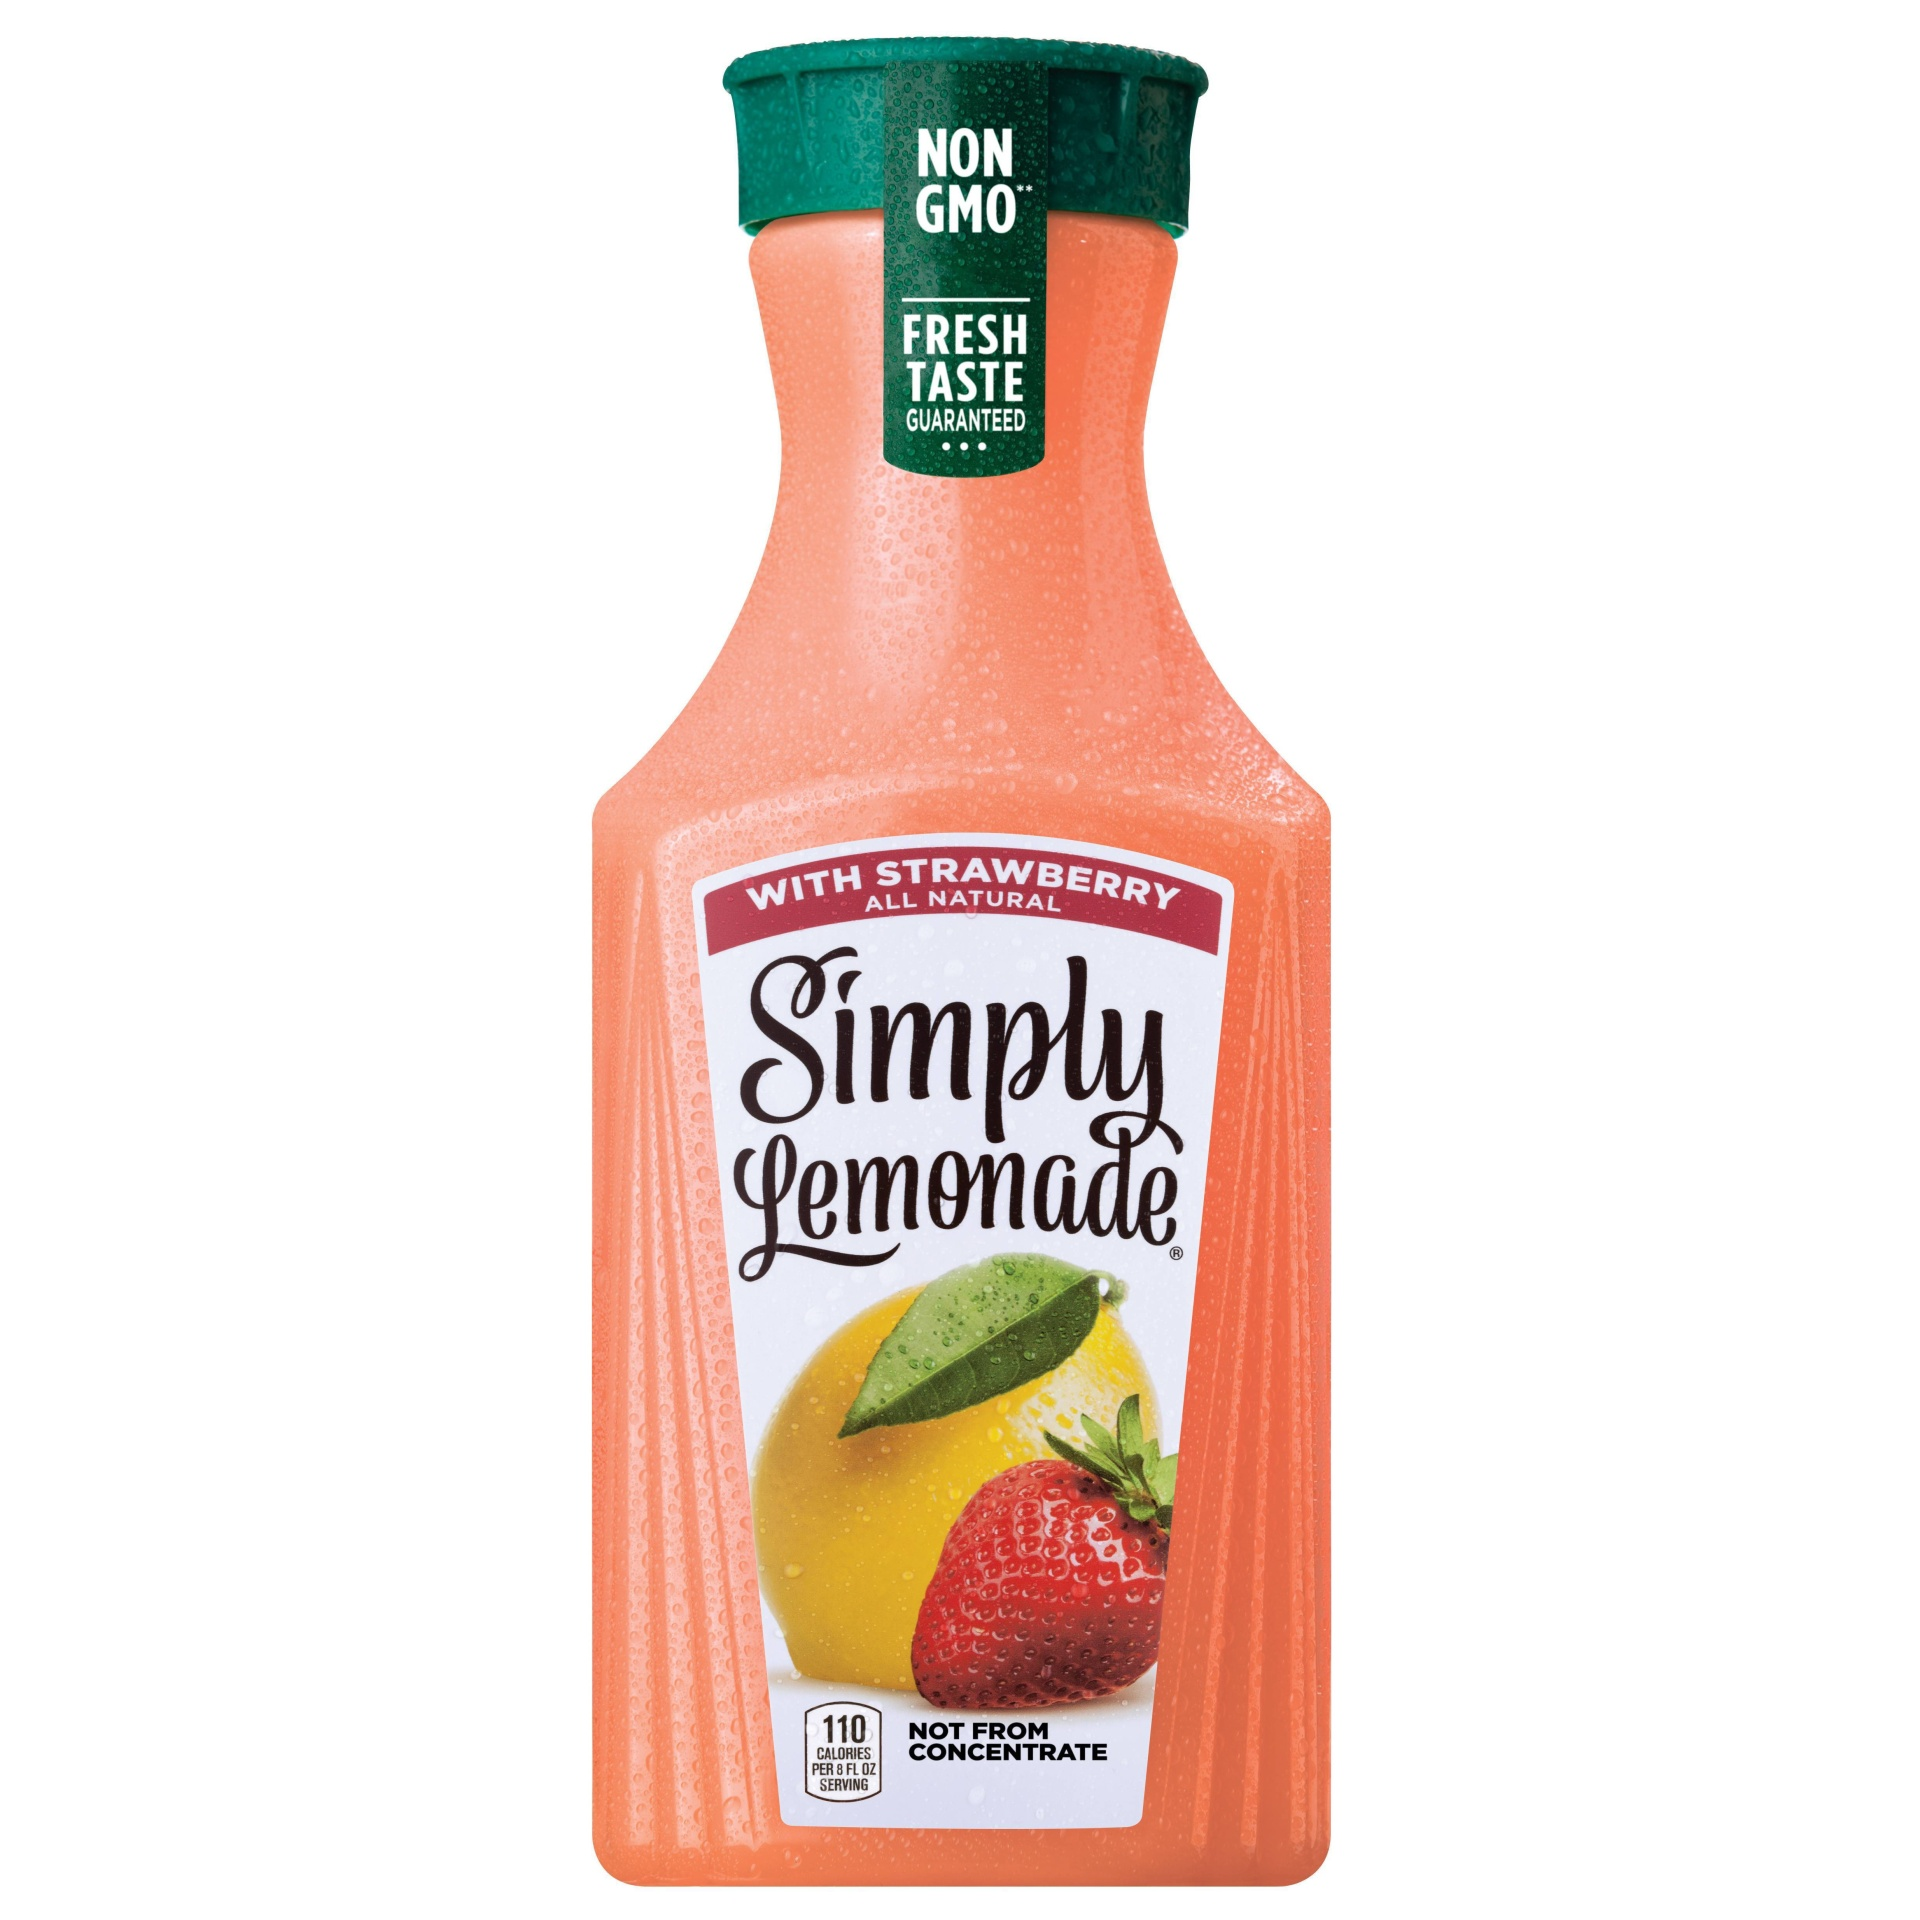 slide 1 of 2, Simply Lemonade with Strawberry,